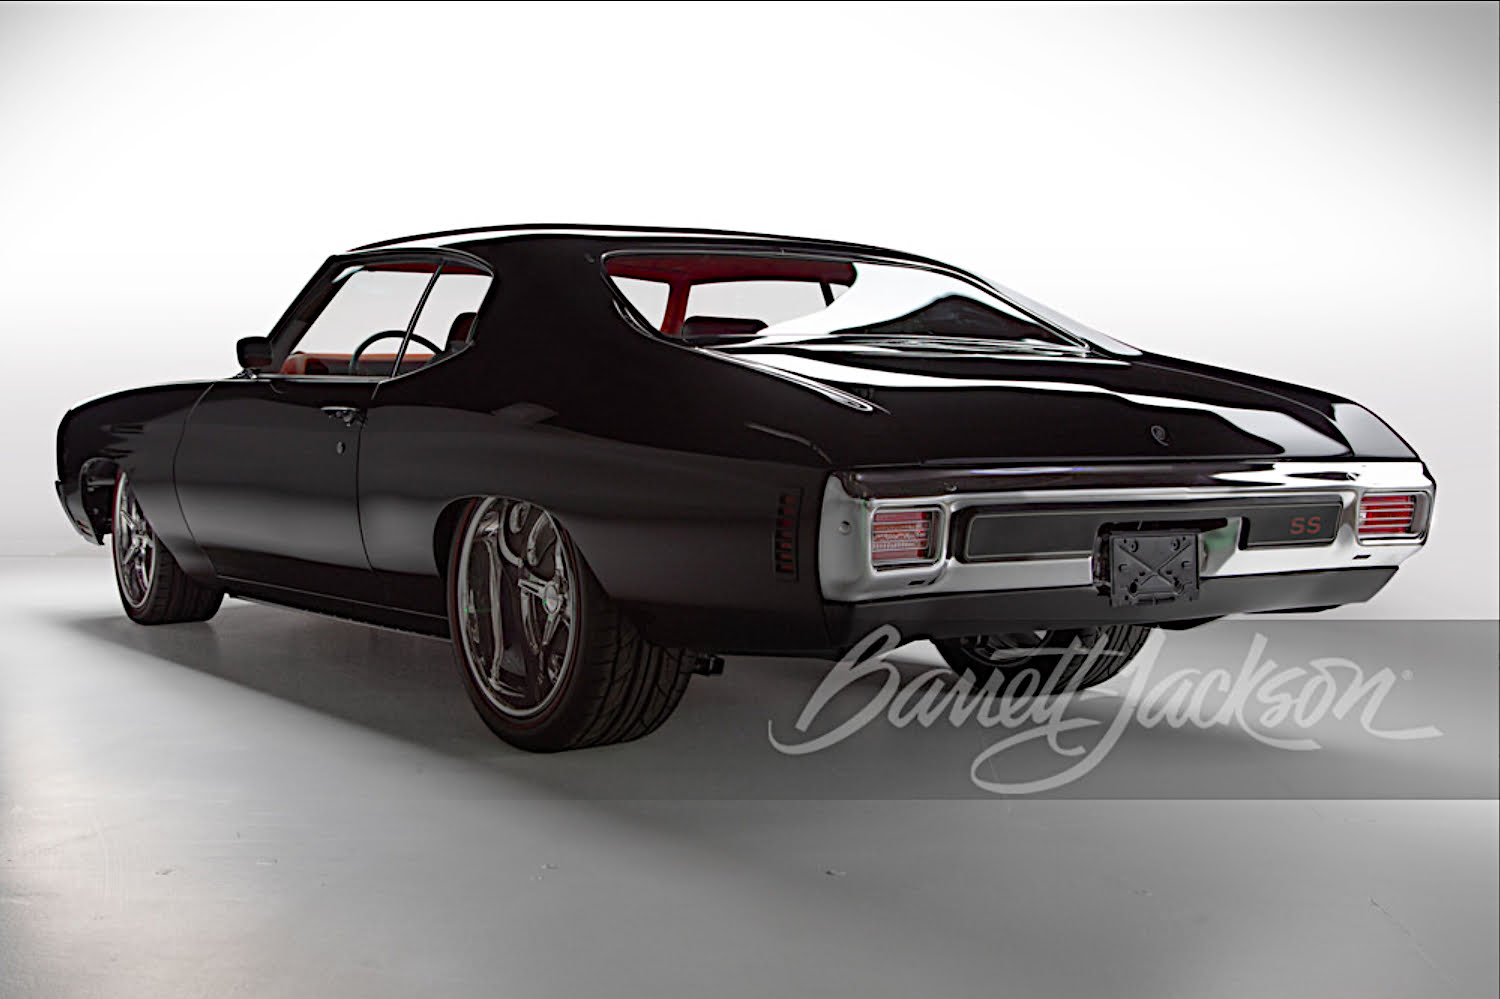 lt5 swapped 1970 chevelle is up for